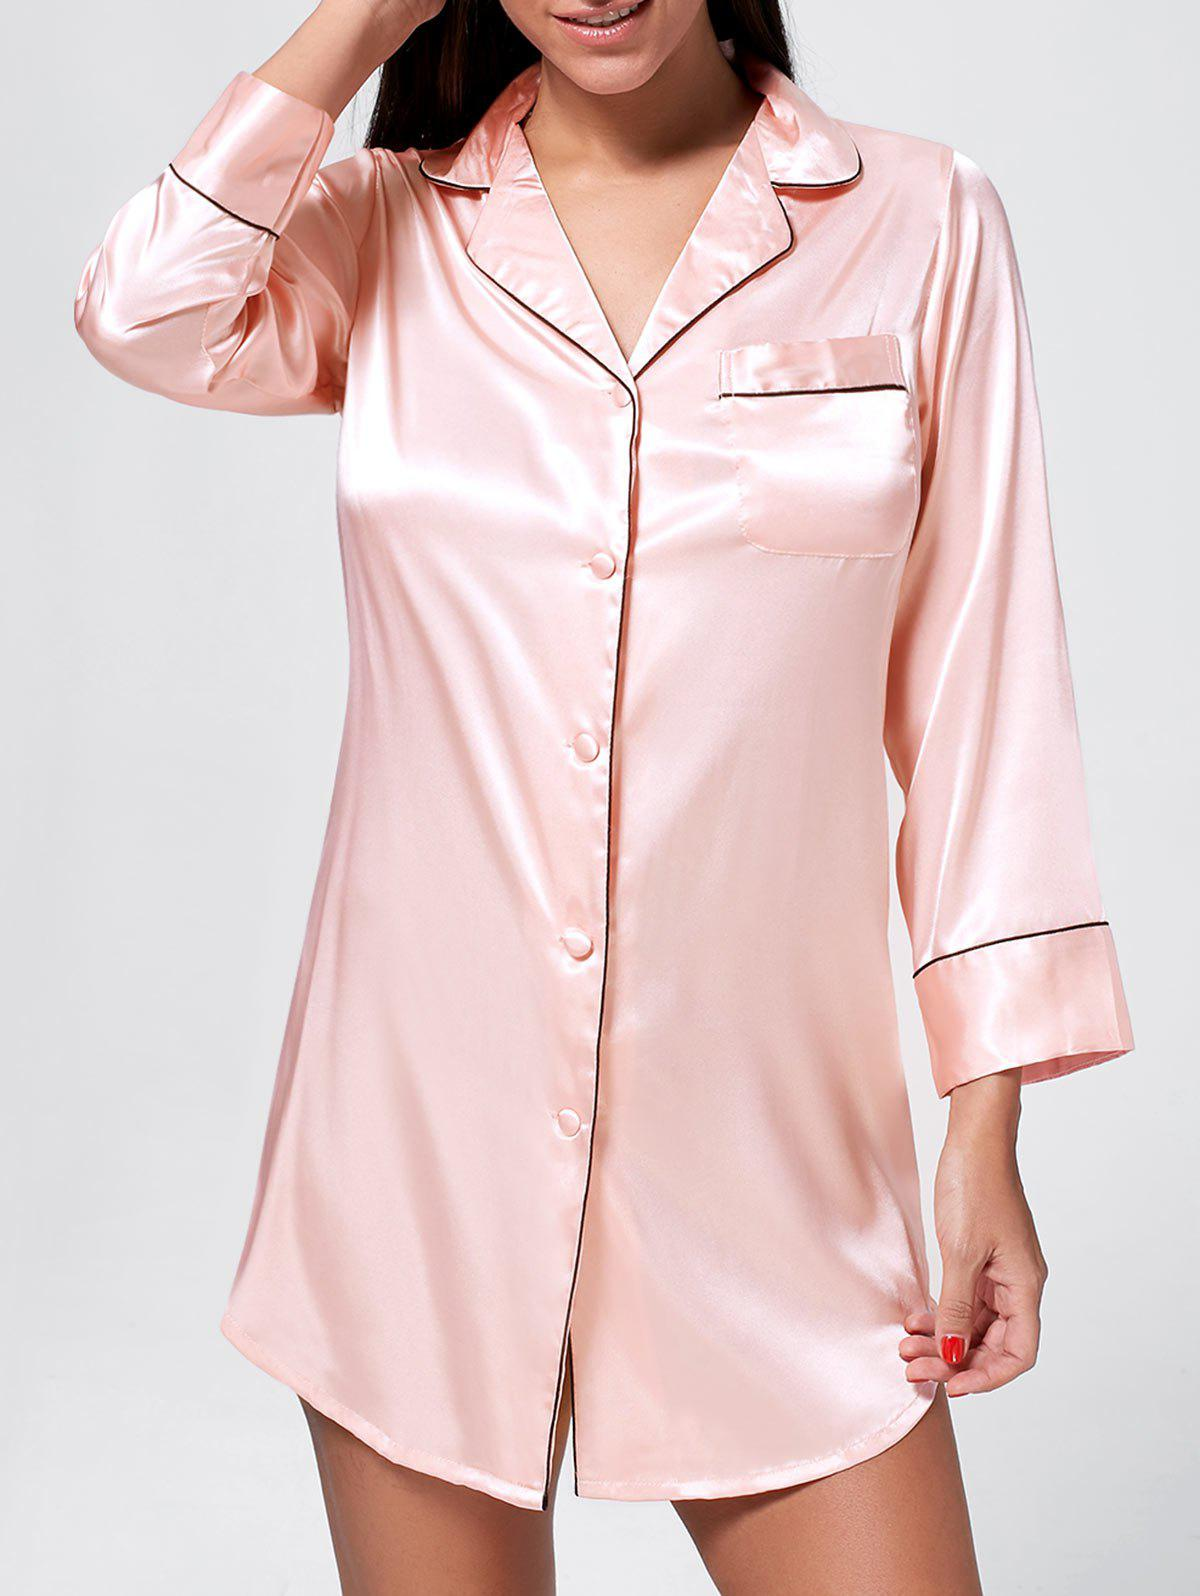 Satin Pajama Shirt Dress 5 5 x 2cm lcd multifunctional intelligent digital 4 x aa aaa batteries charger black us plug